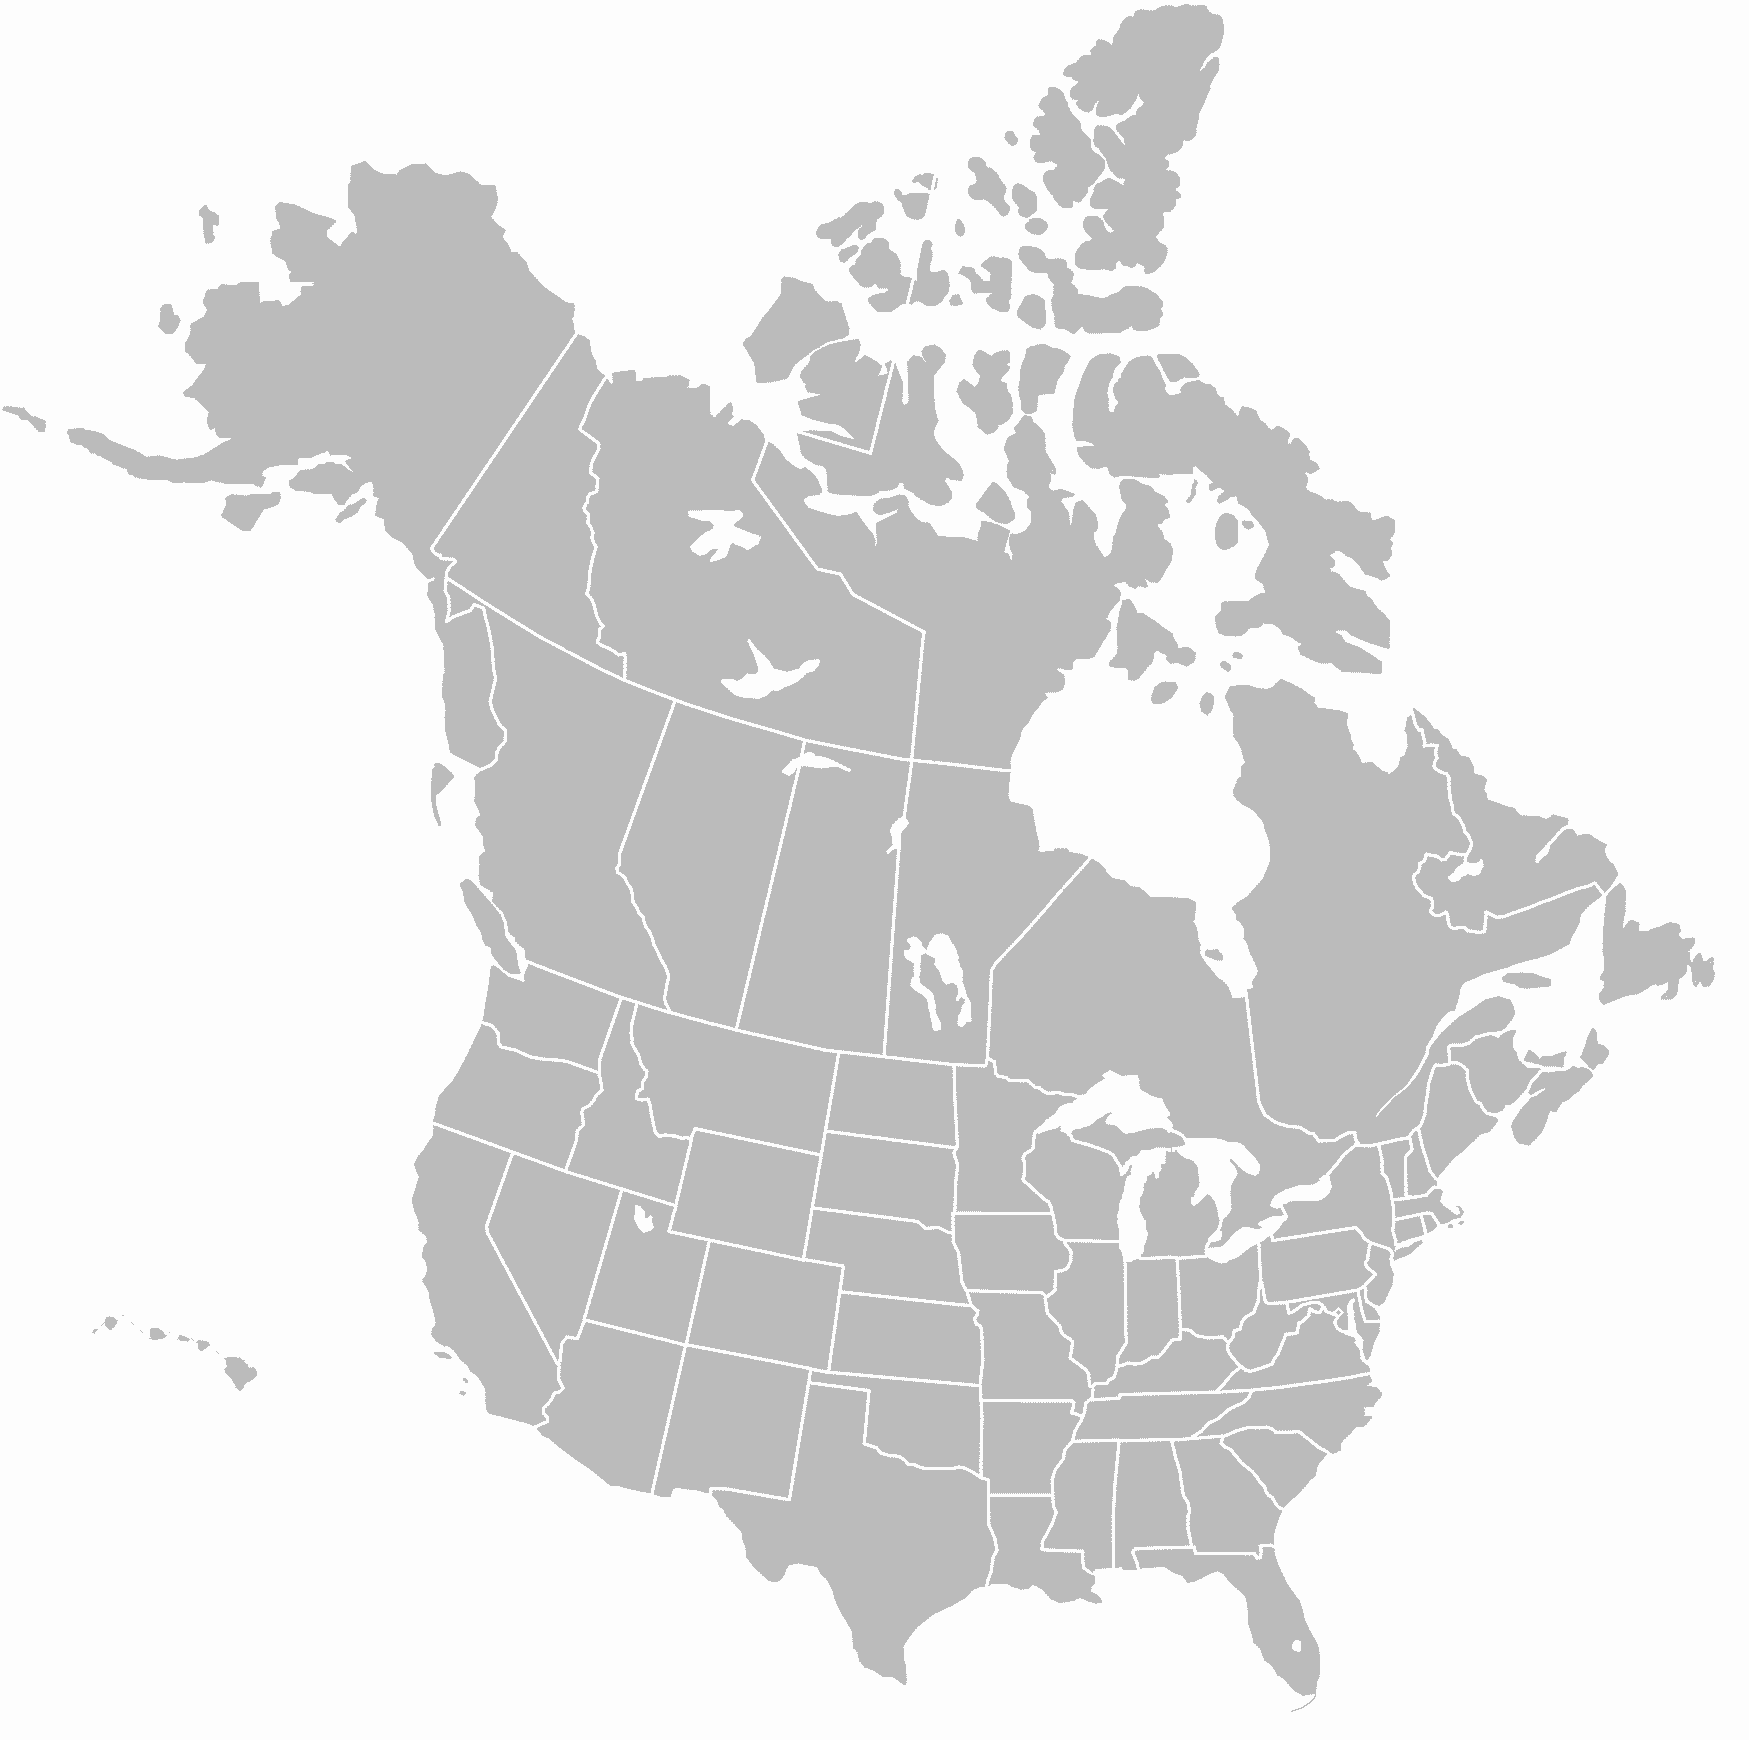 File:North America blank map with state and province boundaries.png ...